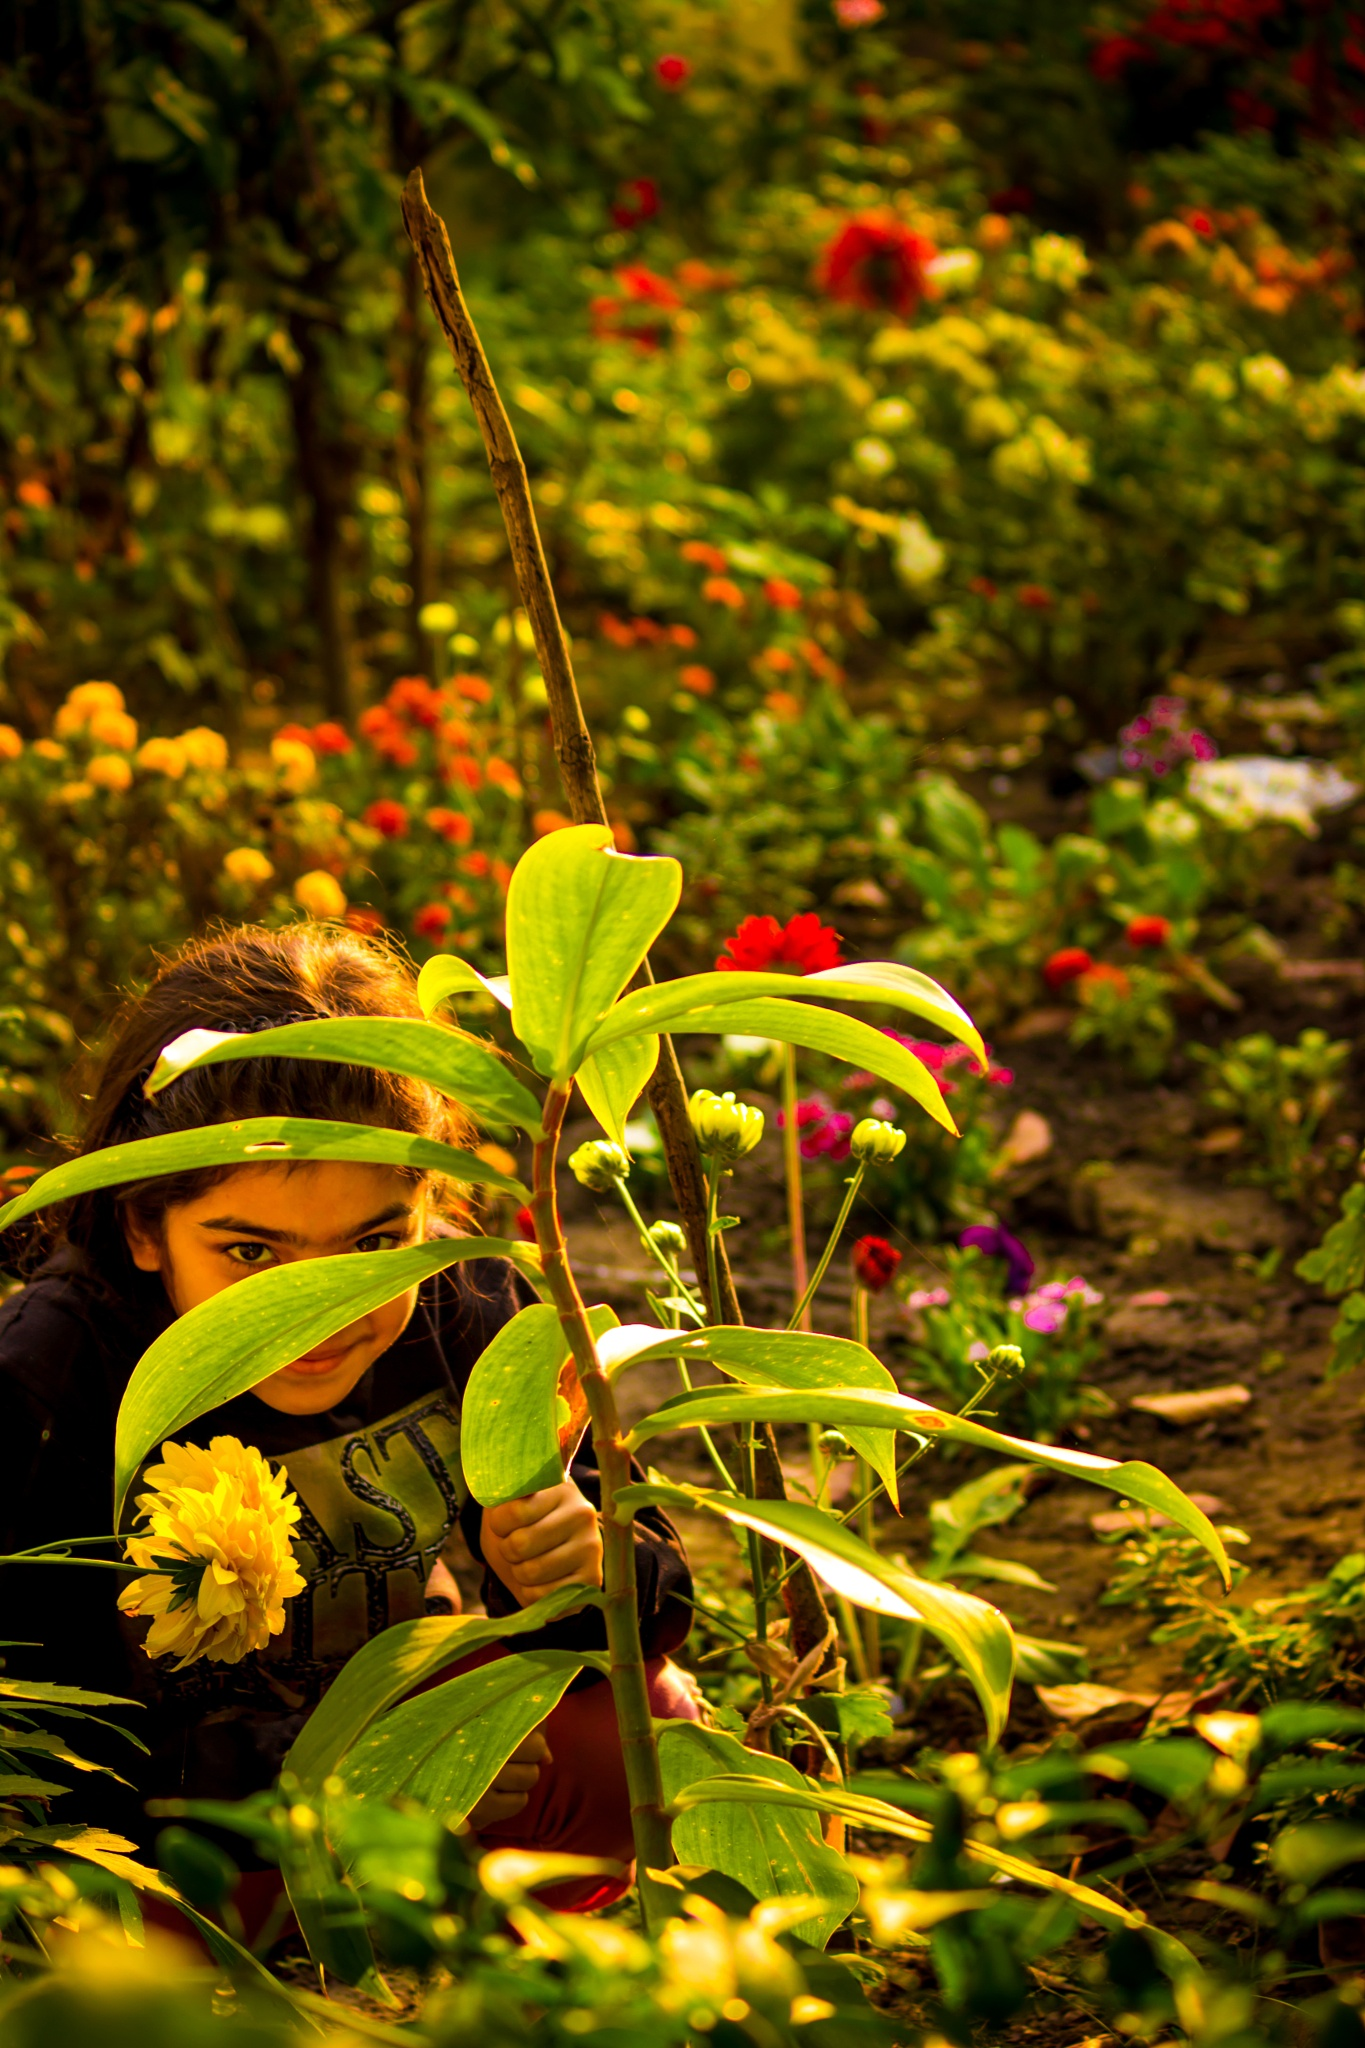 Flower Is A Soul Blossoming In Nature by Nikhil Mace